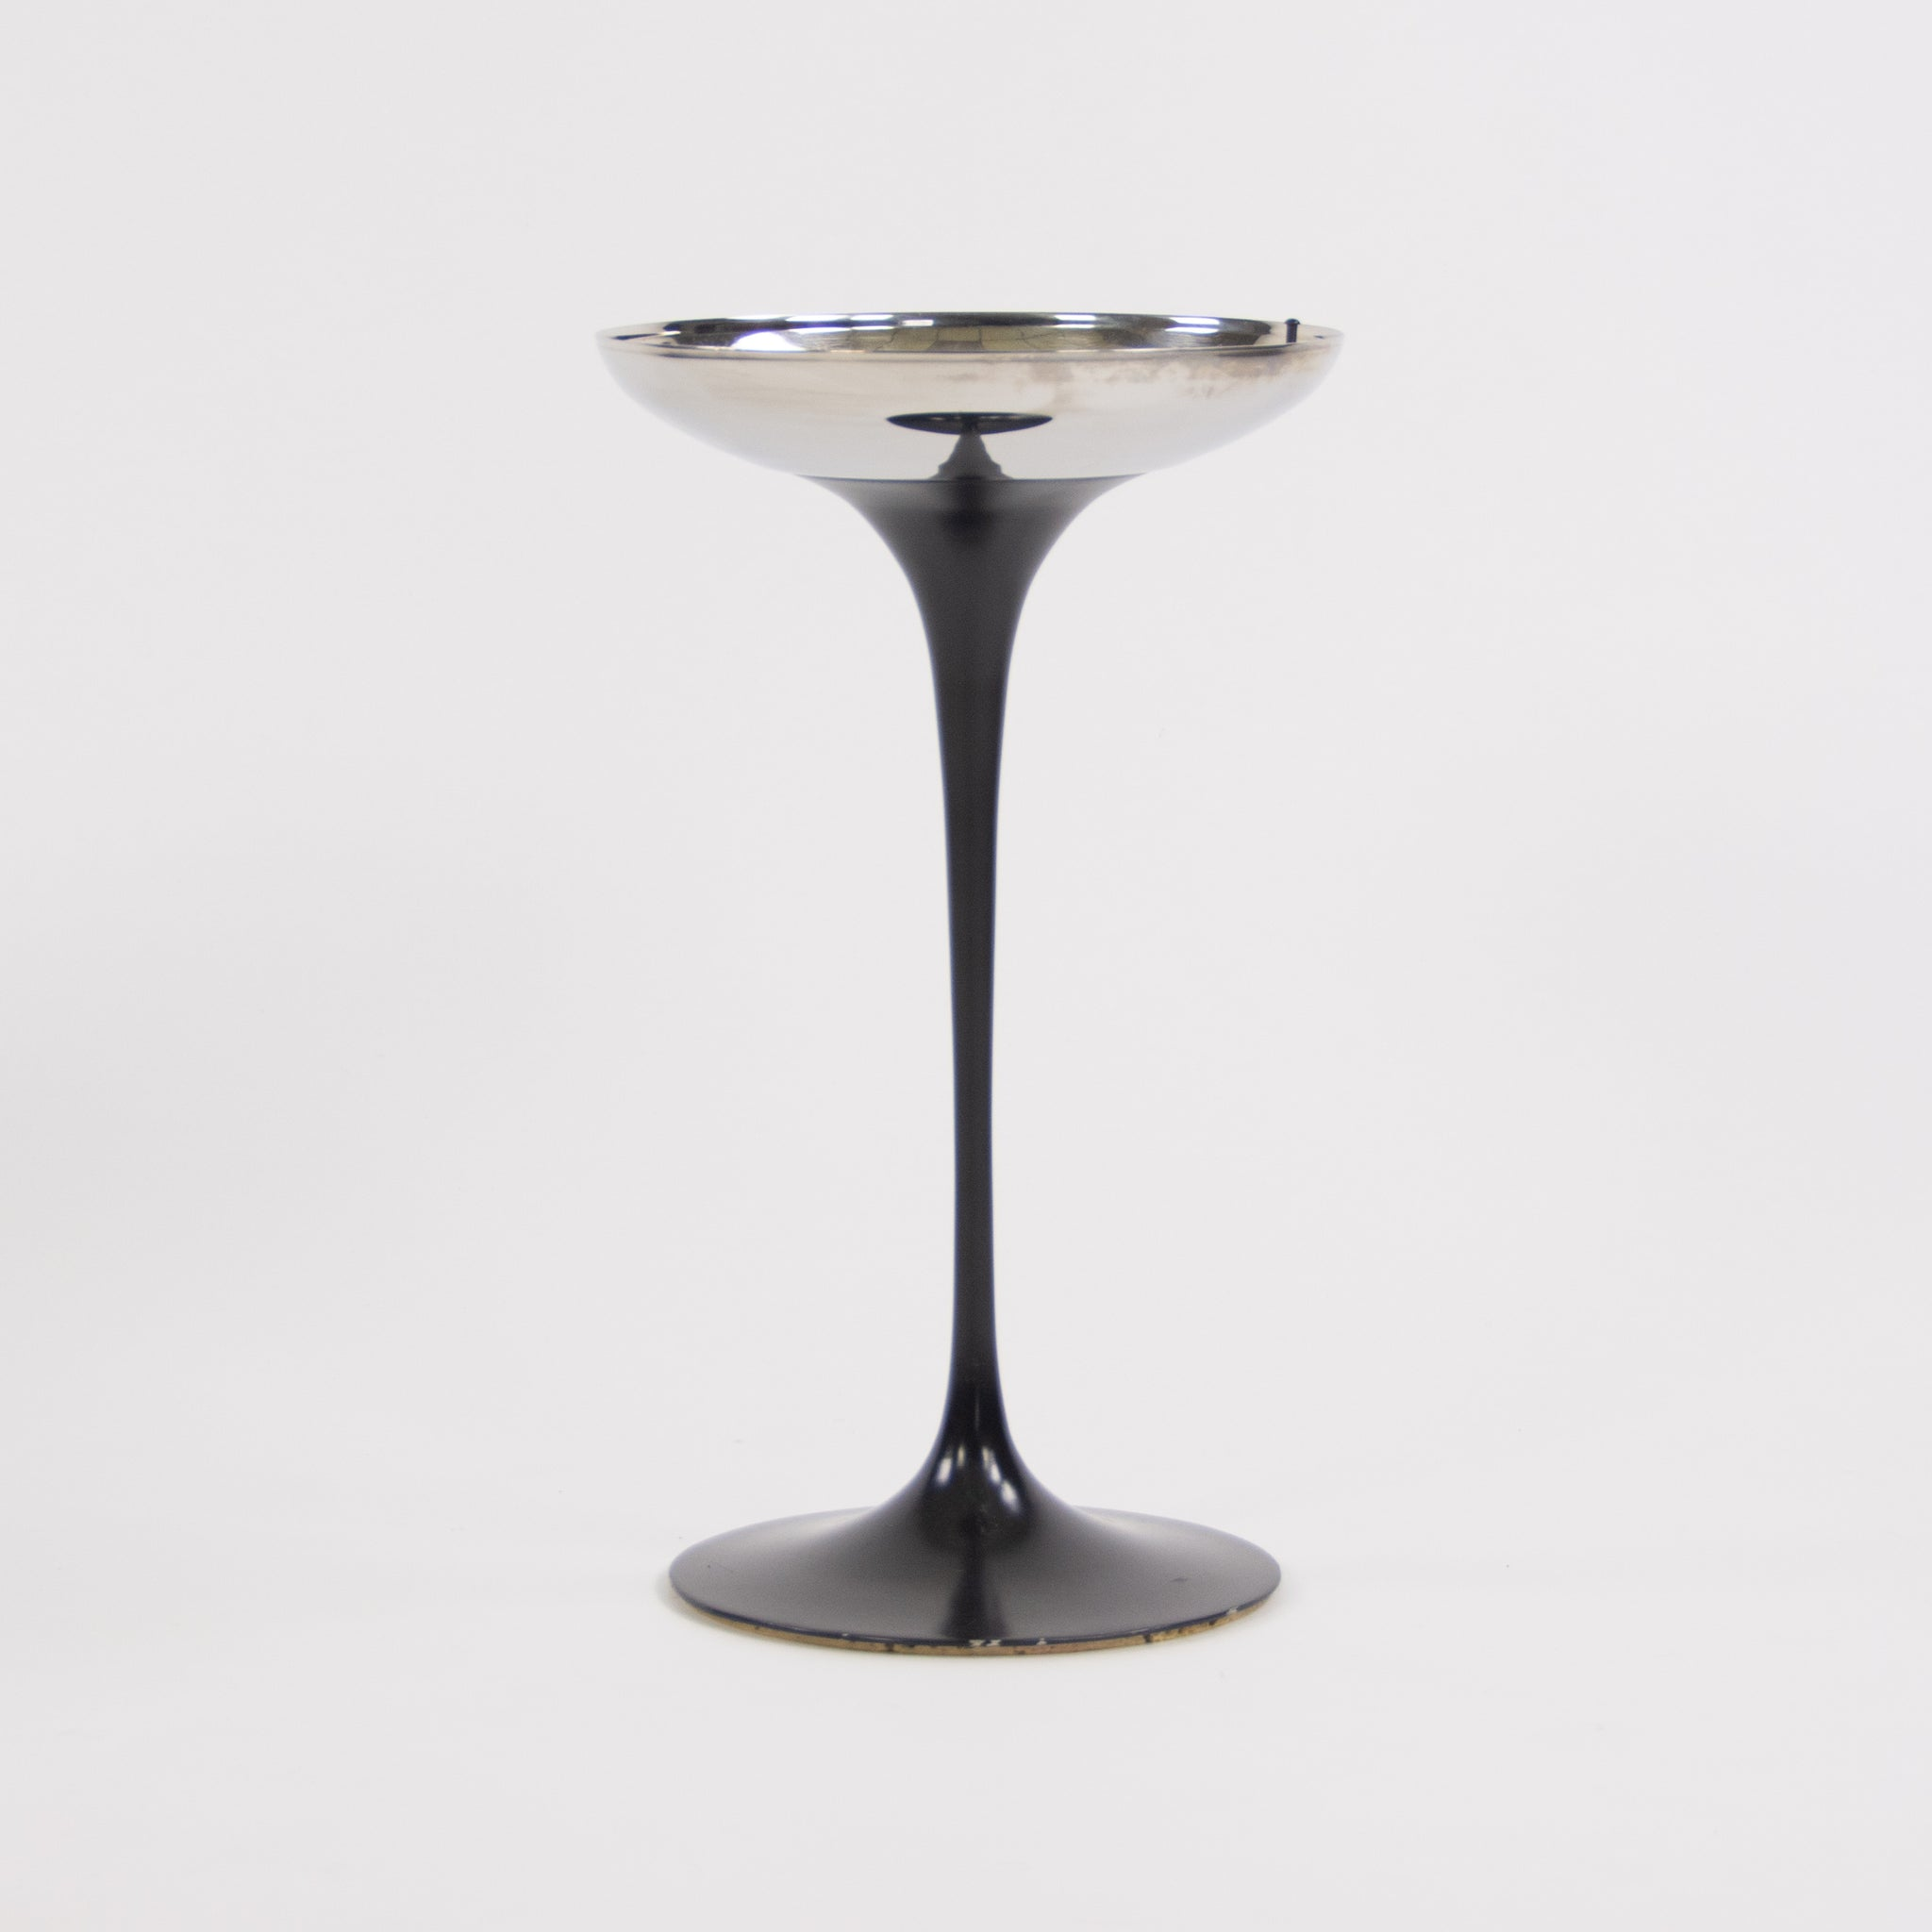 SOLD 1950's Vintage Eero Saarinen For Knoll International Tulip Ashtray Black Pedestal